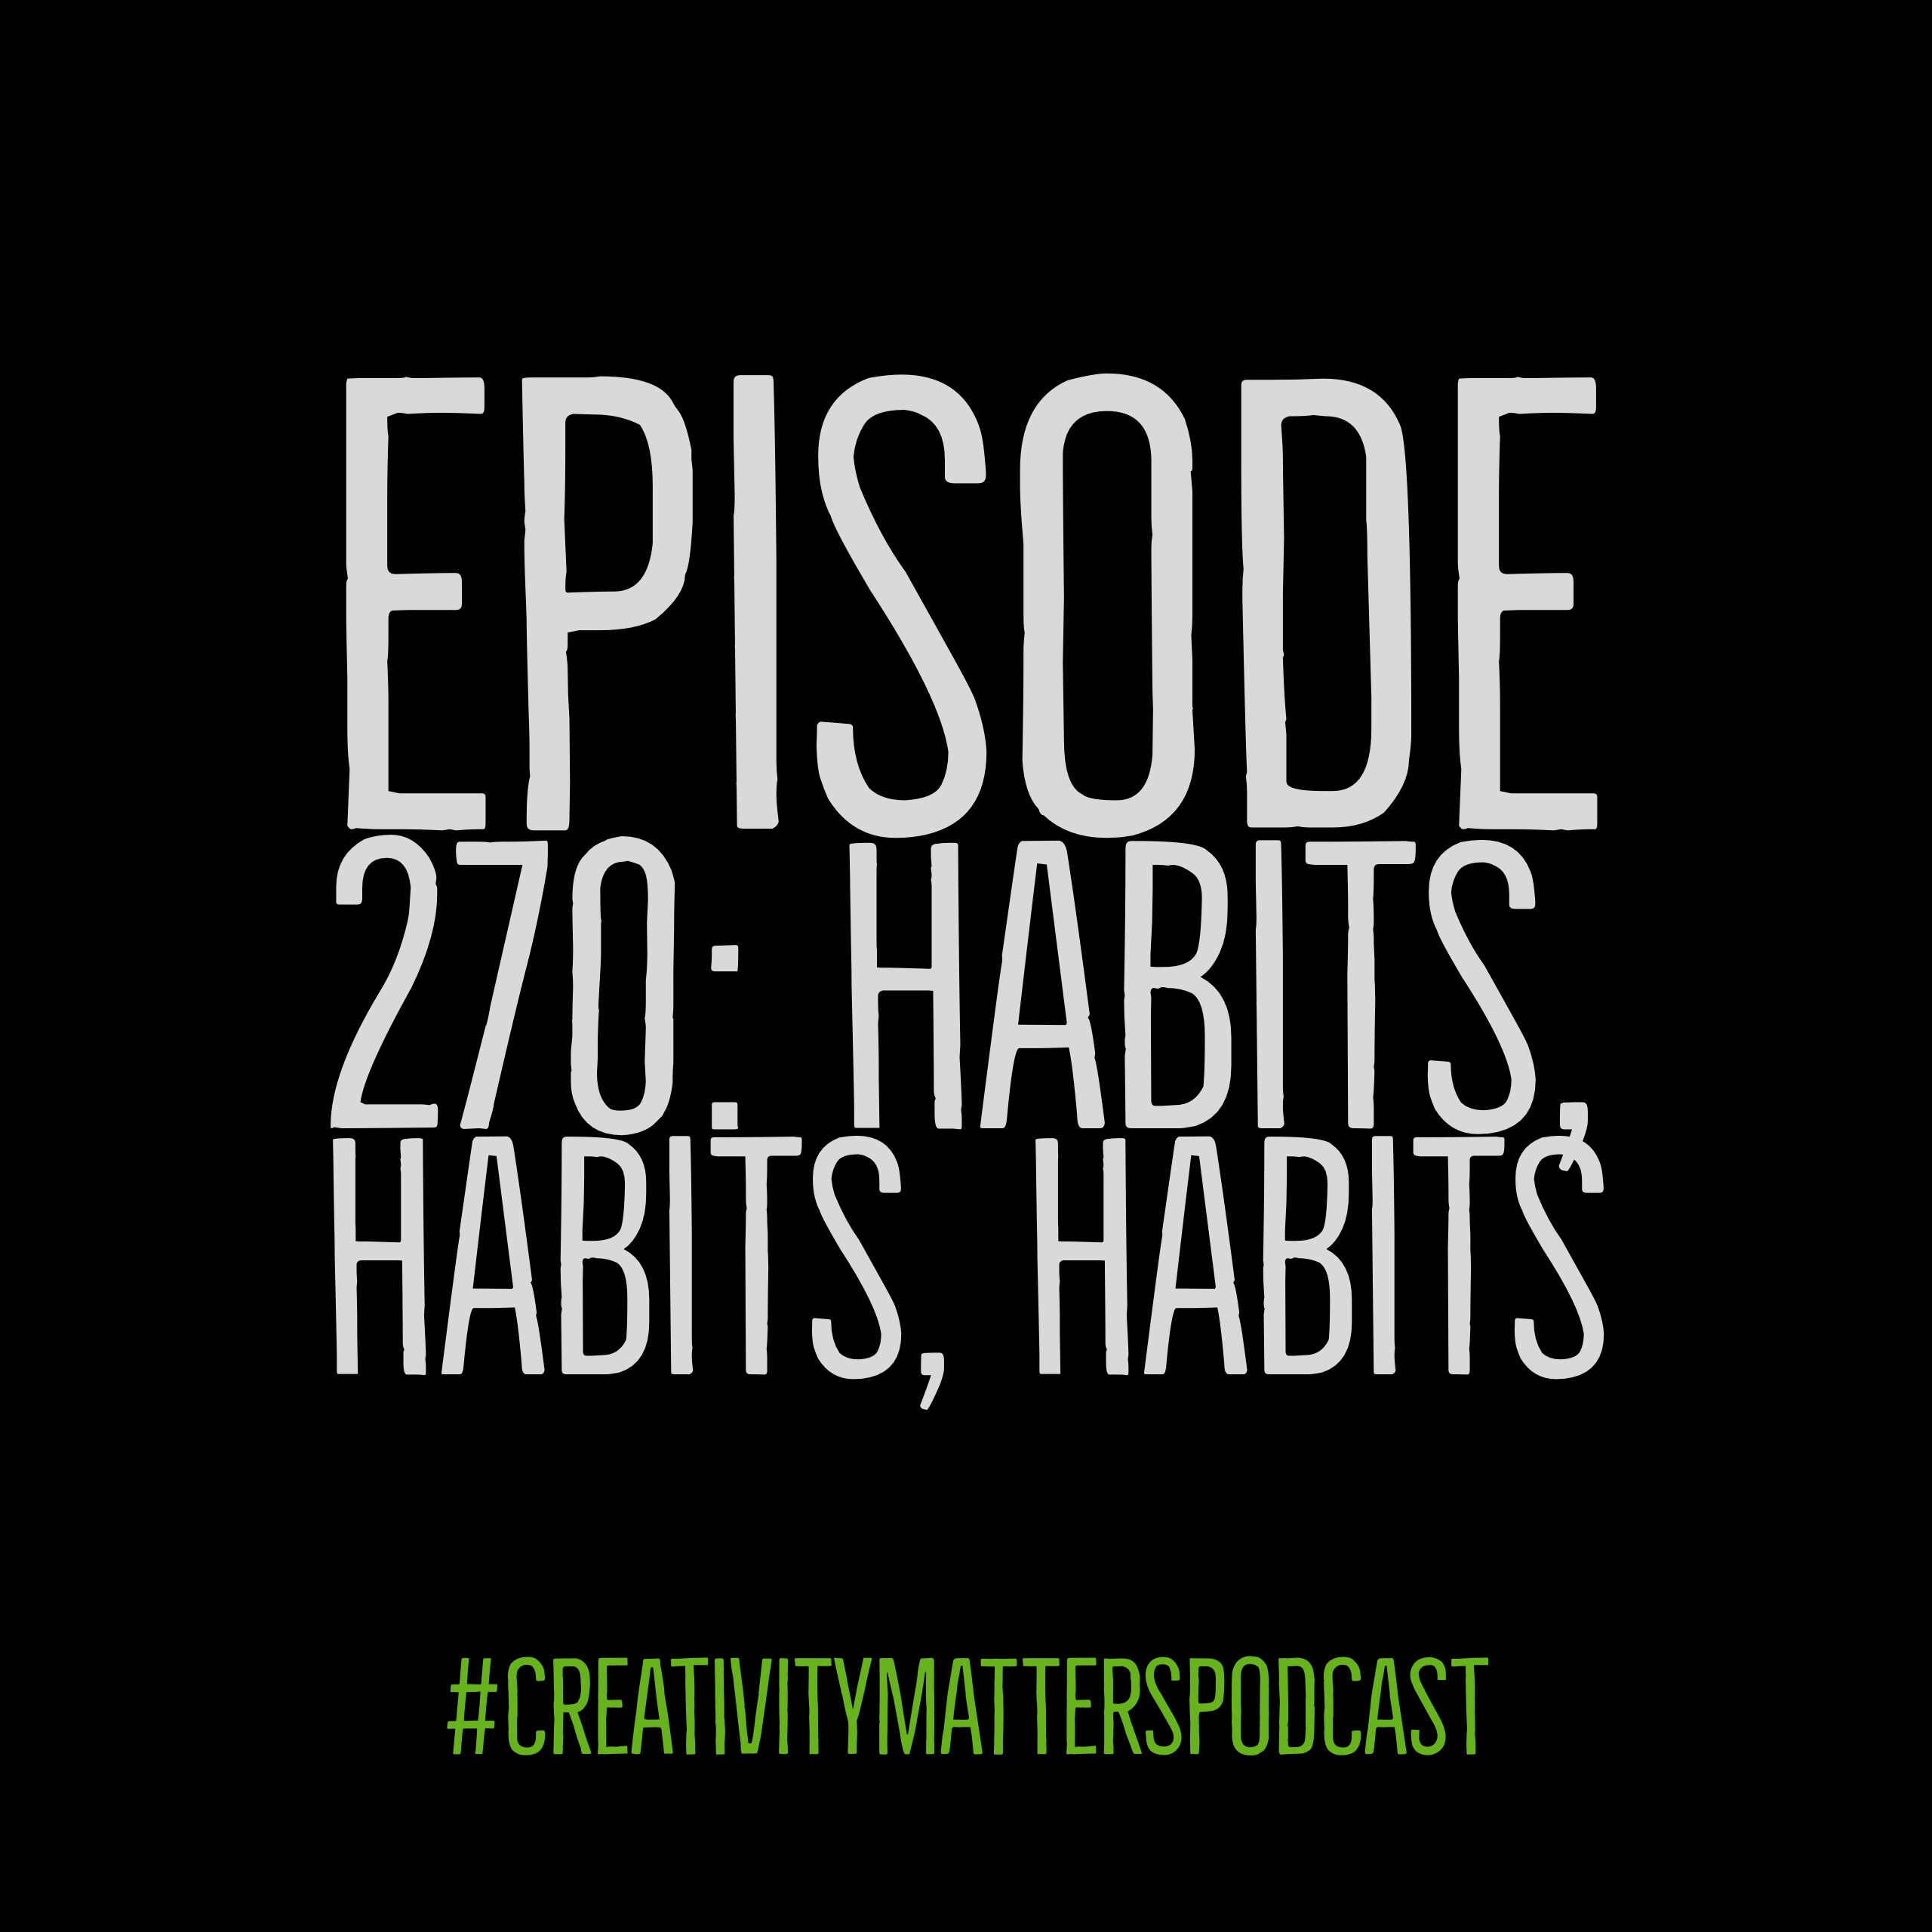 Episode 270: Habits, habits, habits